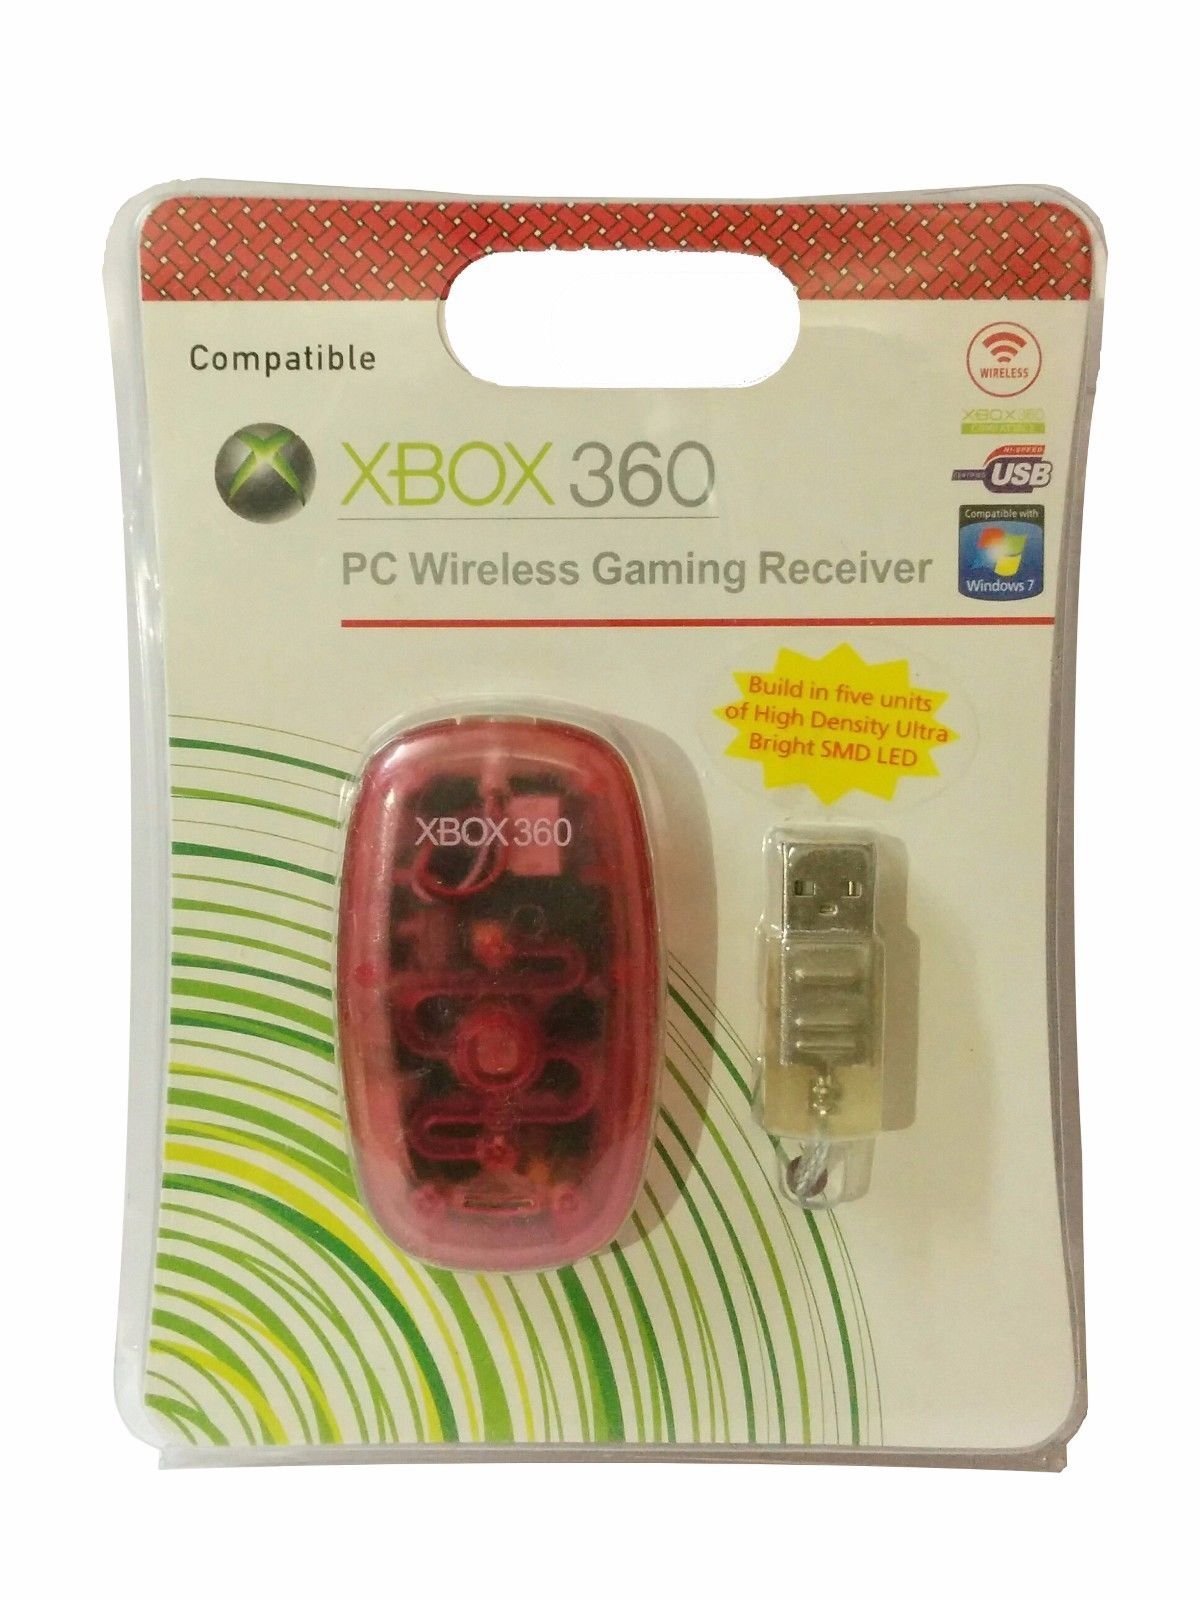 New World Windows PC Wireless USB Gaming Receiver for Xbox 360 Controller Windows product image